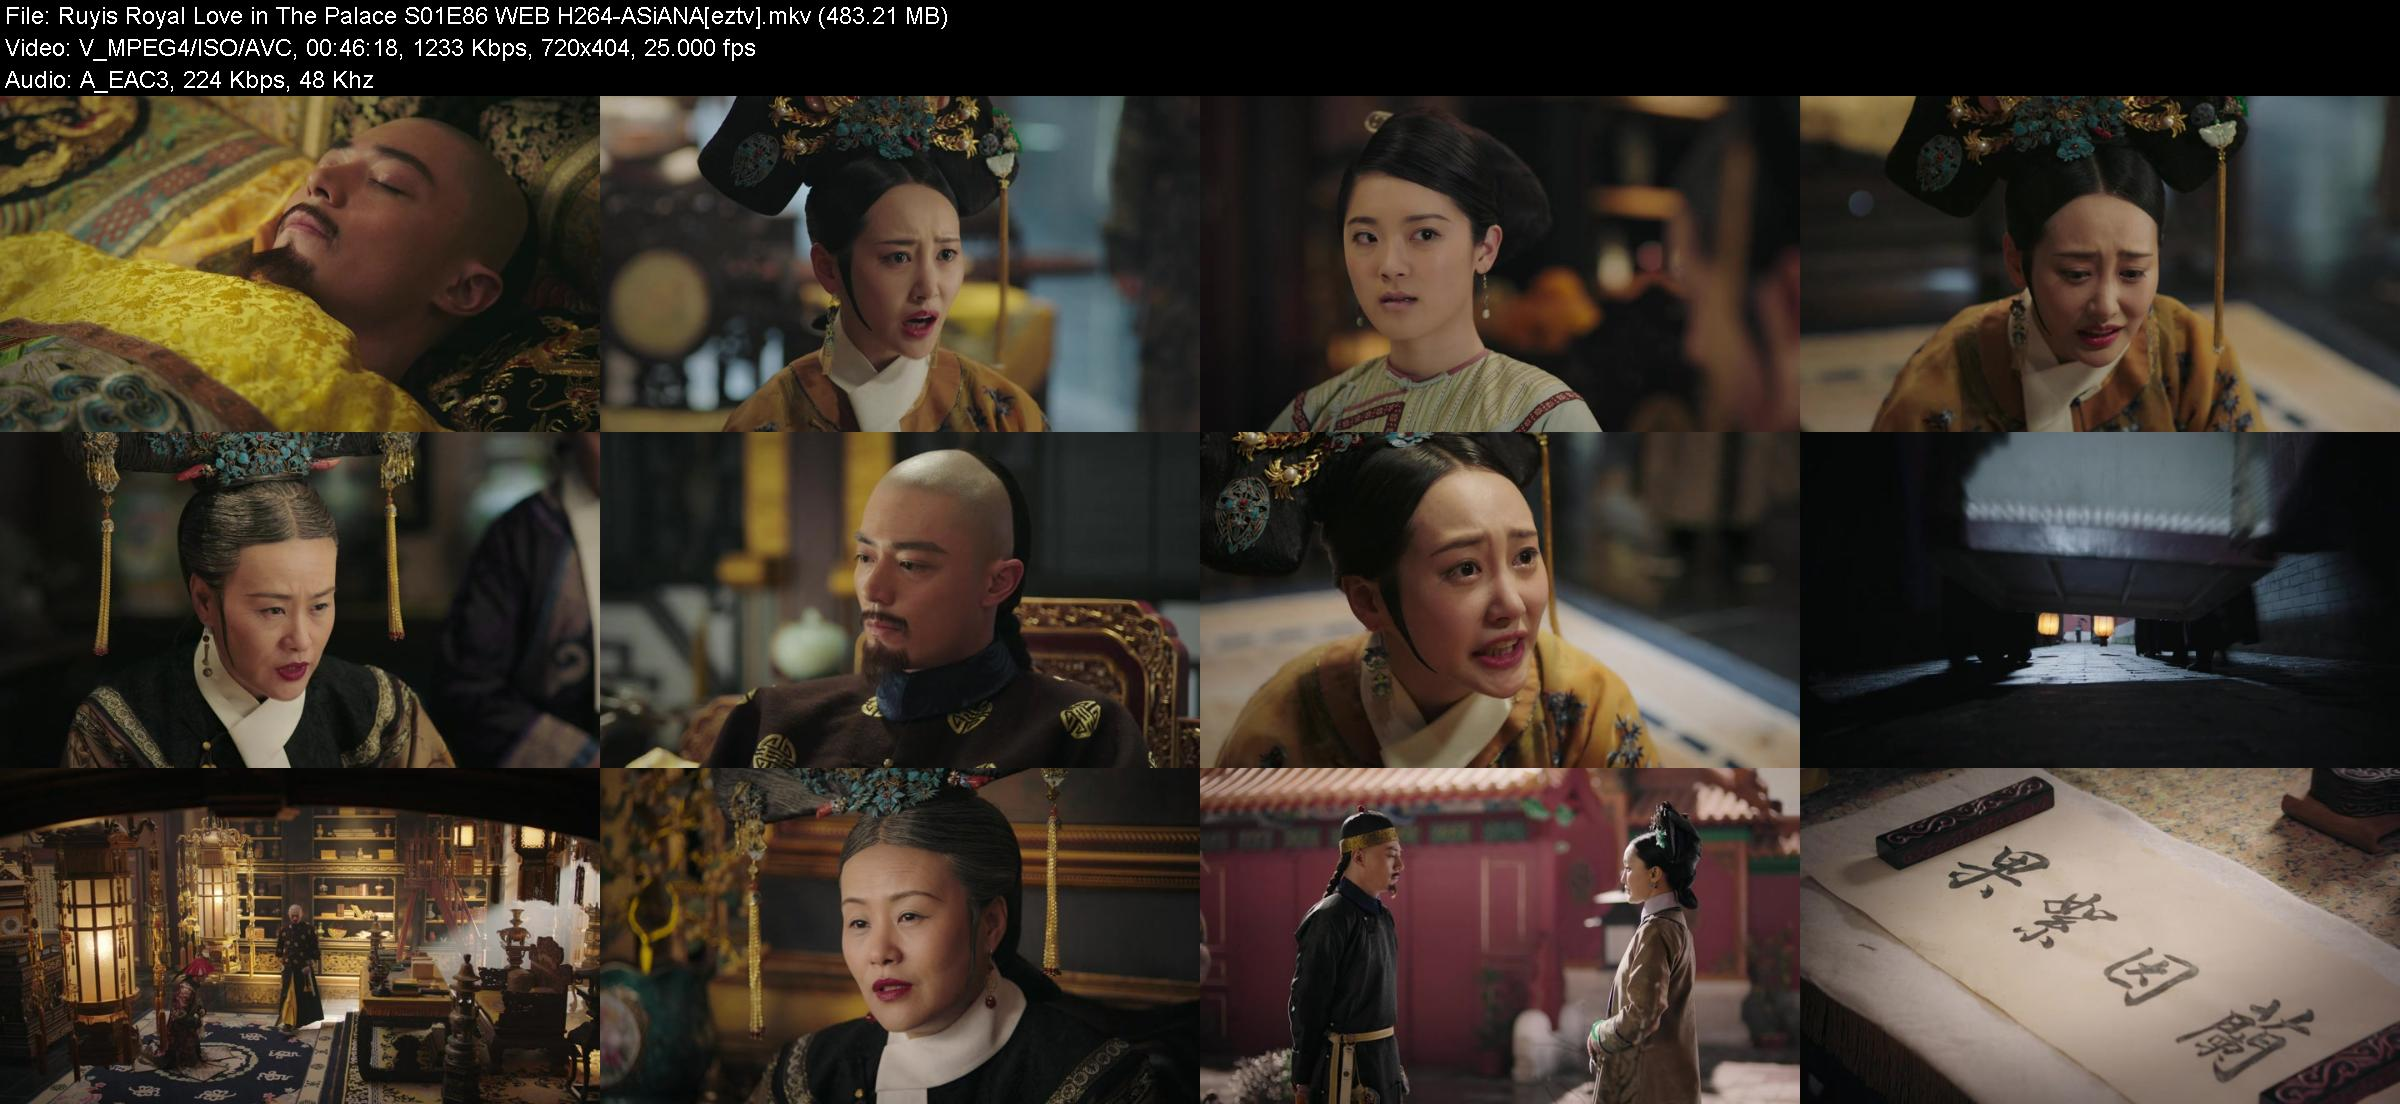 Ruyis Royal Love in The Palace S01E86 WEB H264-ASiANA